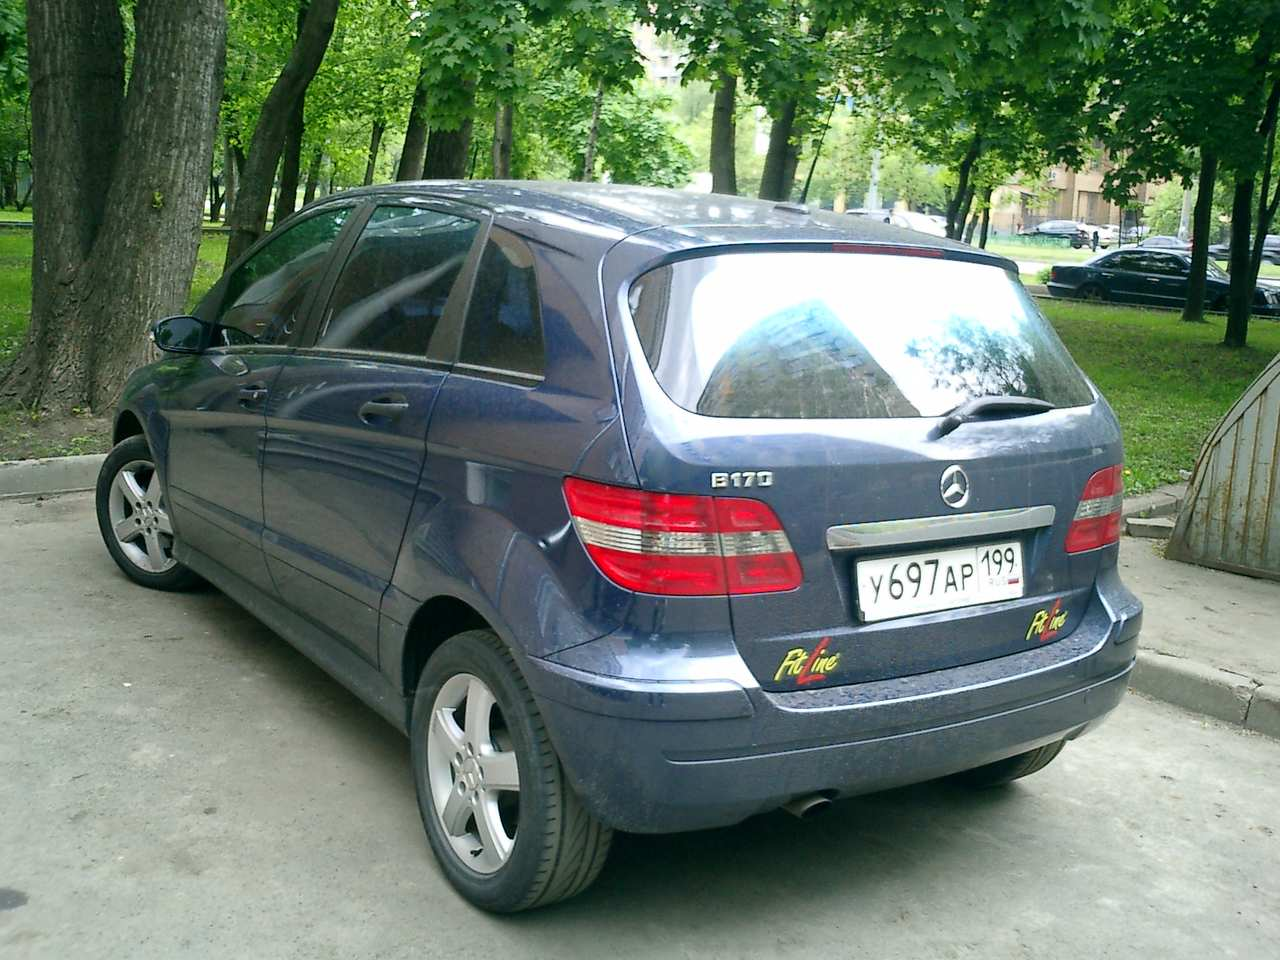 2006 mercedes benz b class photos 1 7 gasoline ff automatic for sale. Black Bedroom Furniture Sets. Home Design Ideas